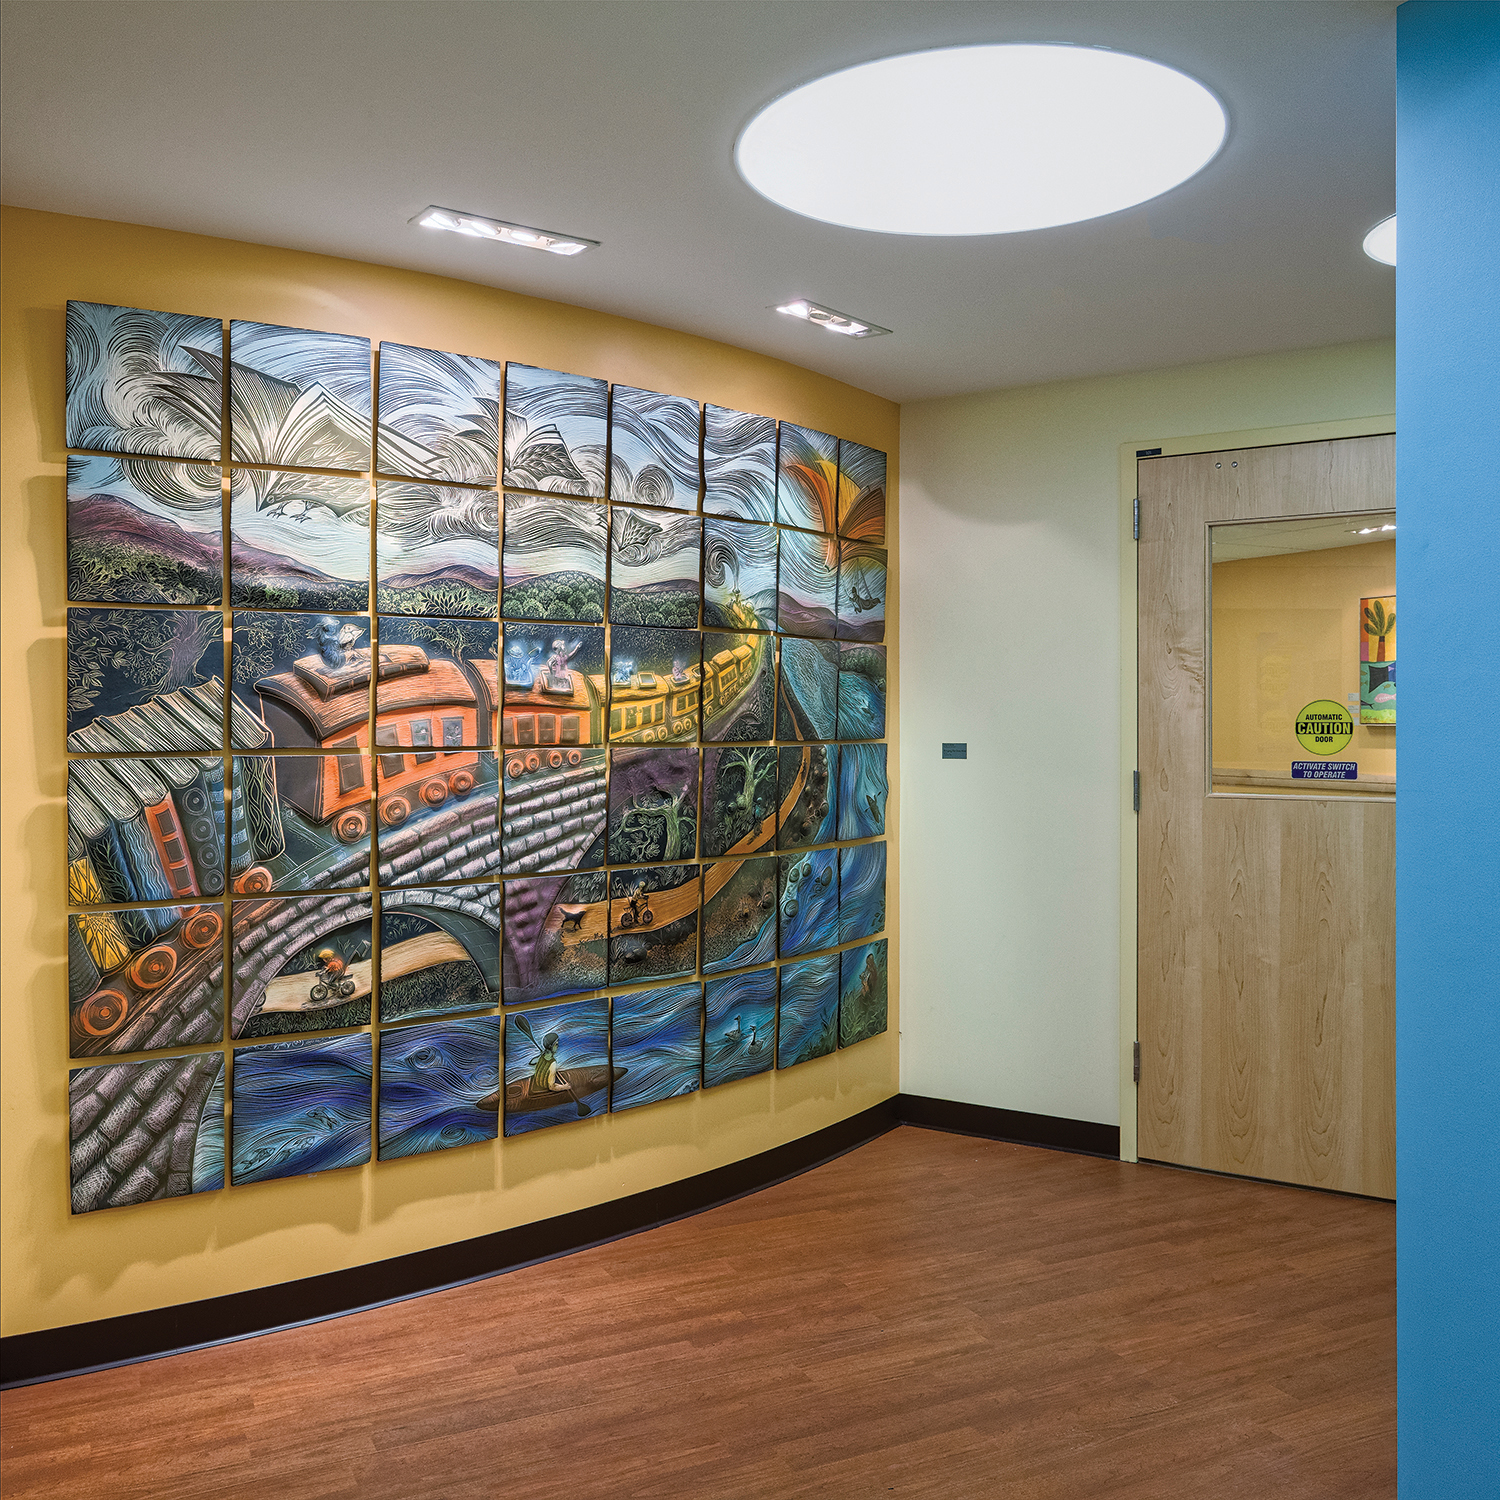 Ynhh Pediatric Specialty Center Bismark Construction